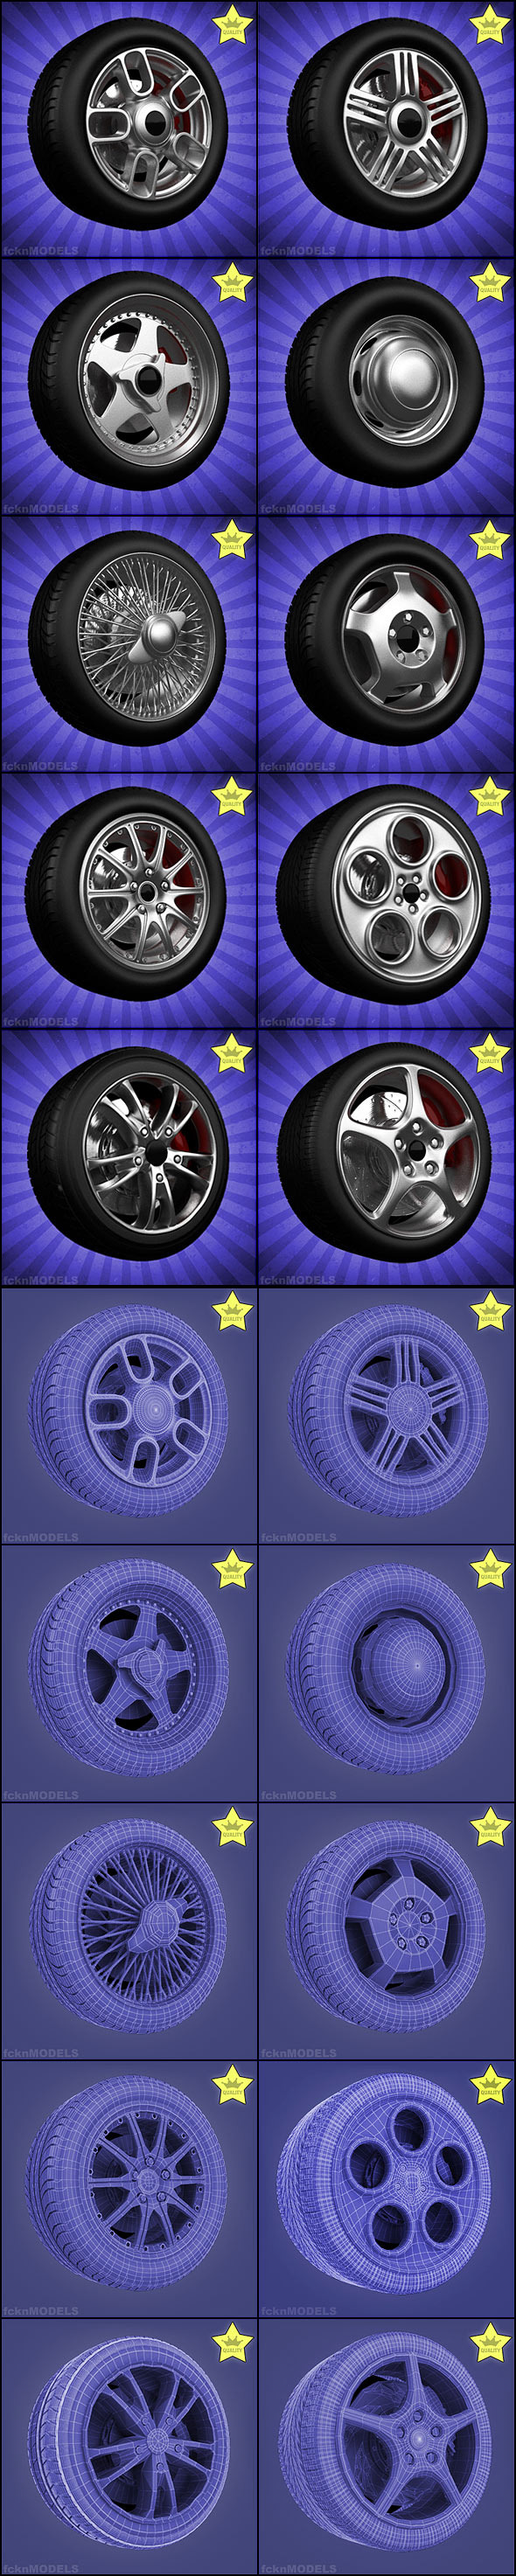 3DOcean High detailed wheels collection 10 wheels 1627464